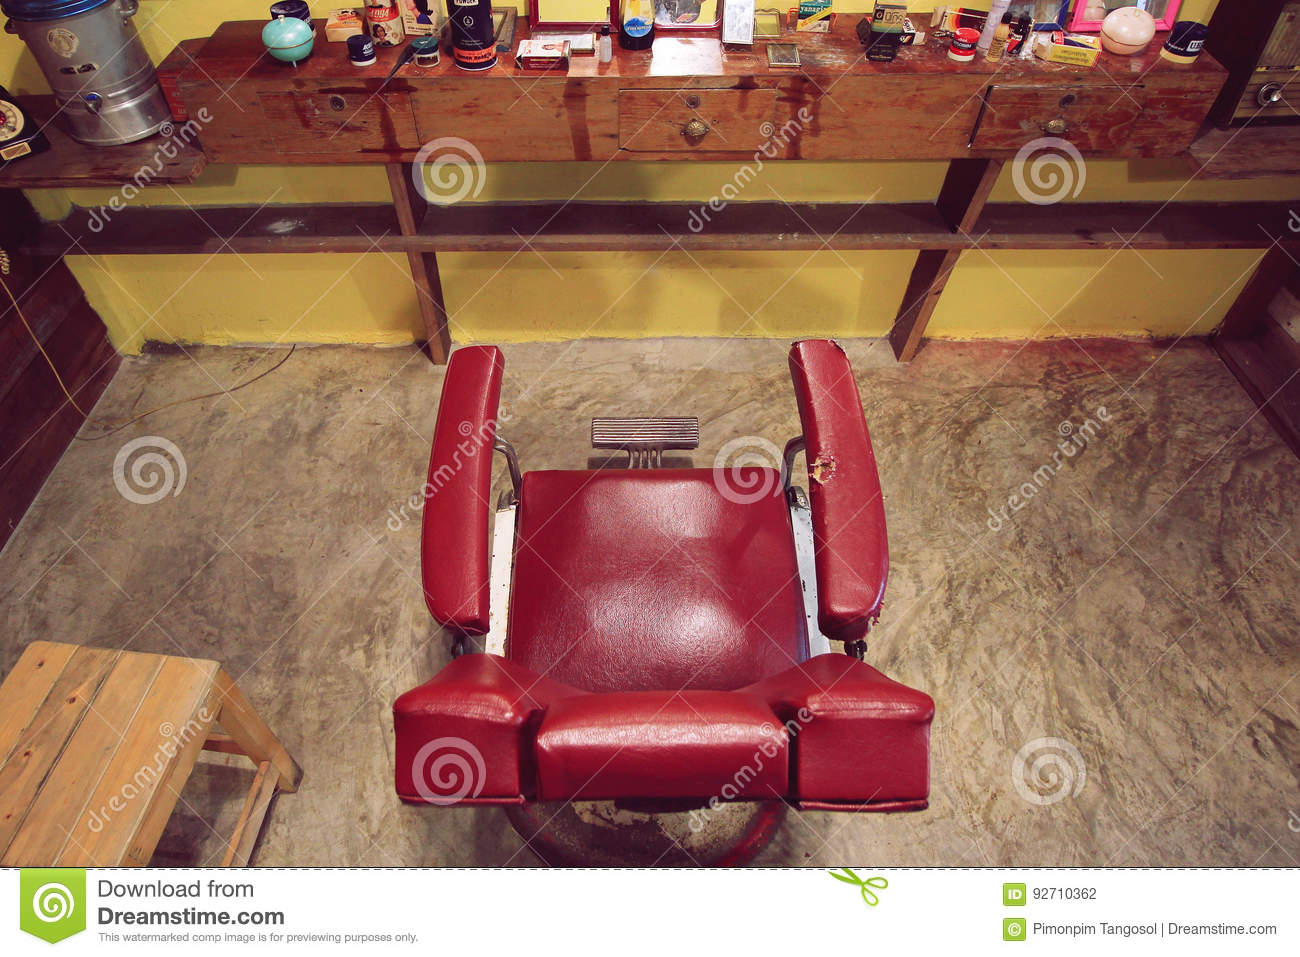 Red chair photography - Baan